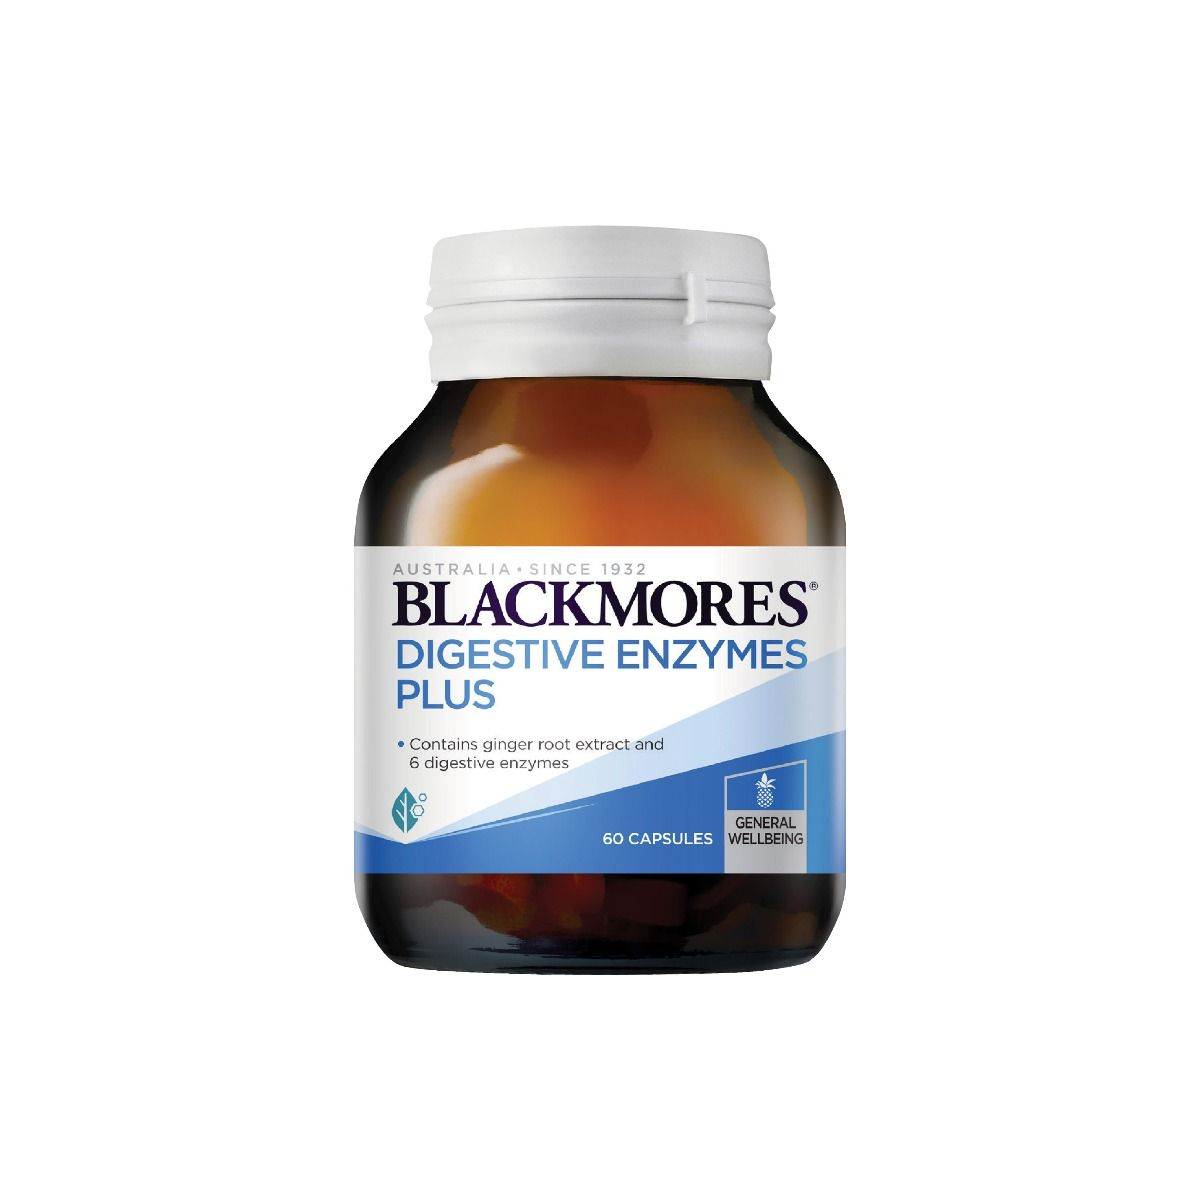 Blackmores Digestive Enzymes Plus 60s